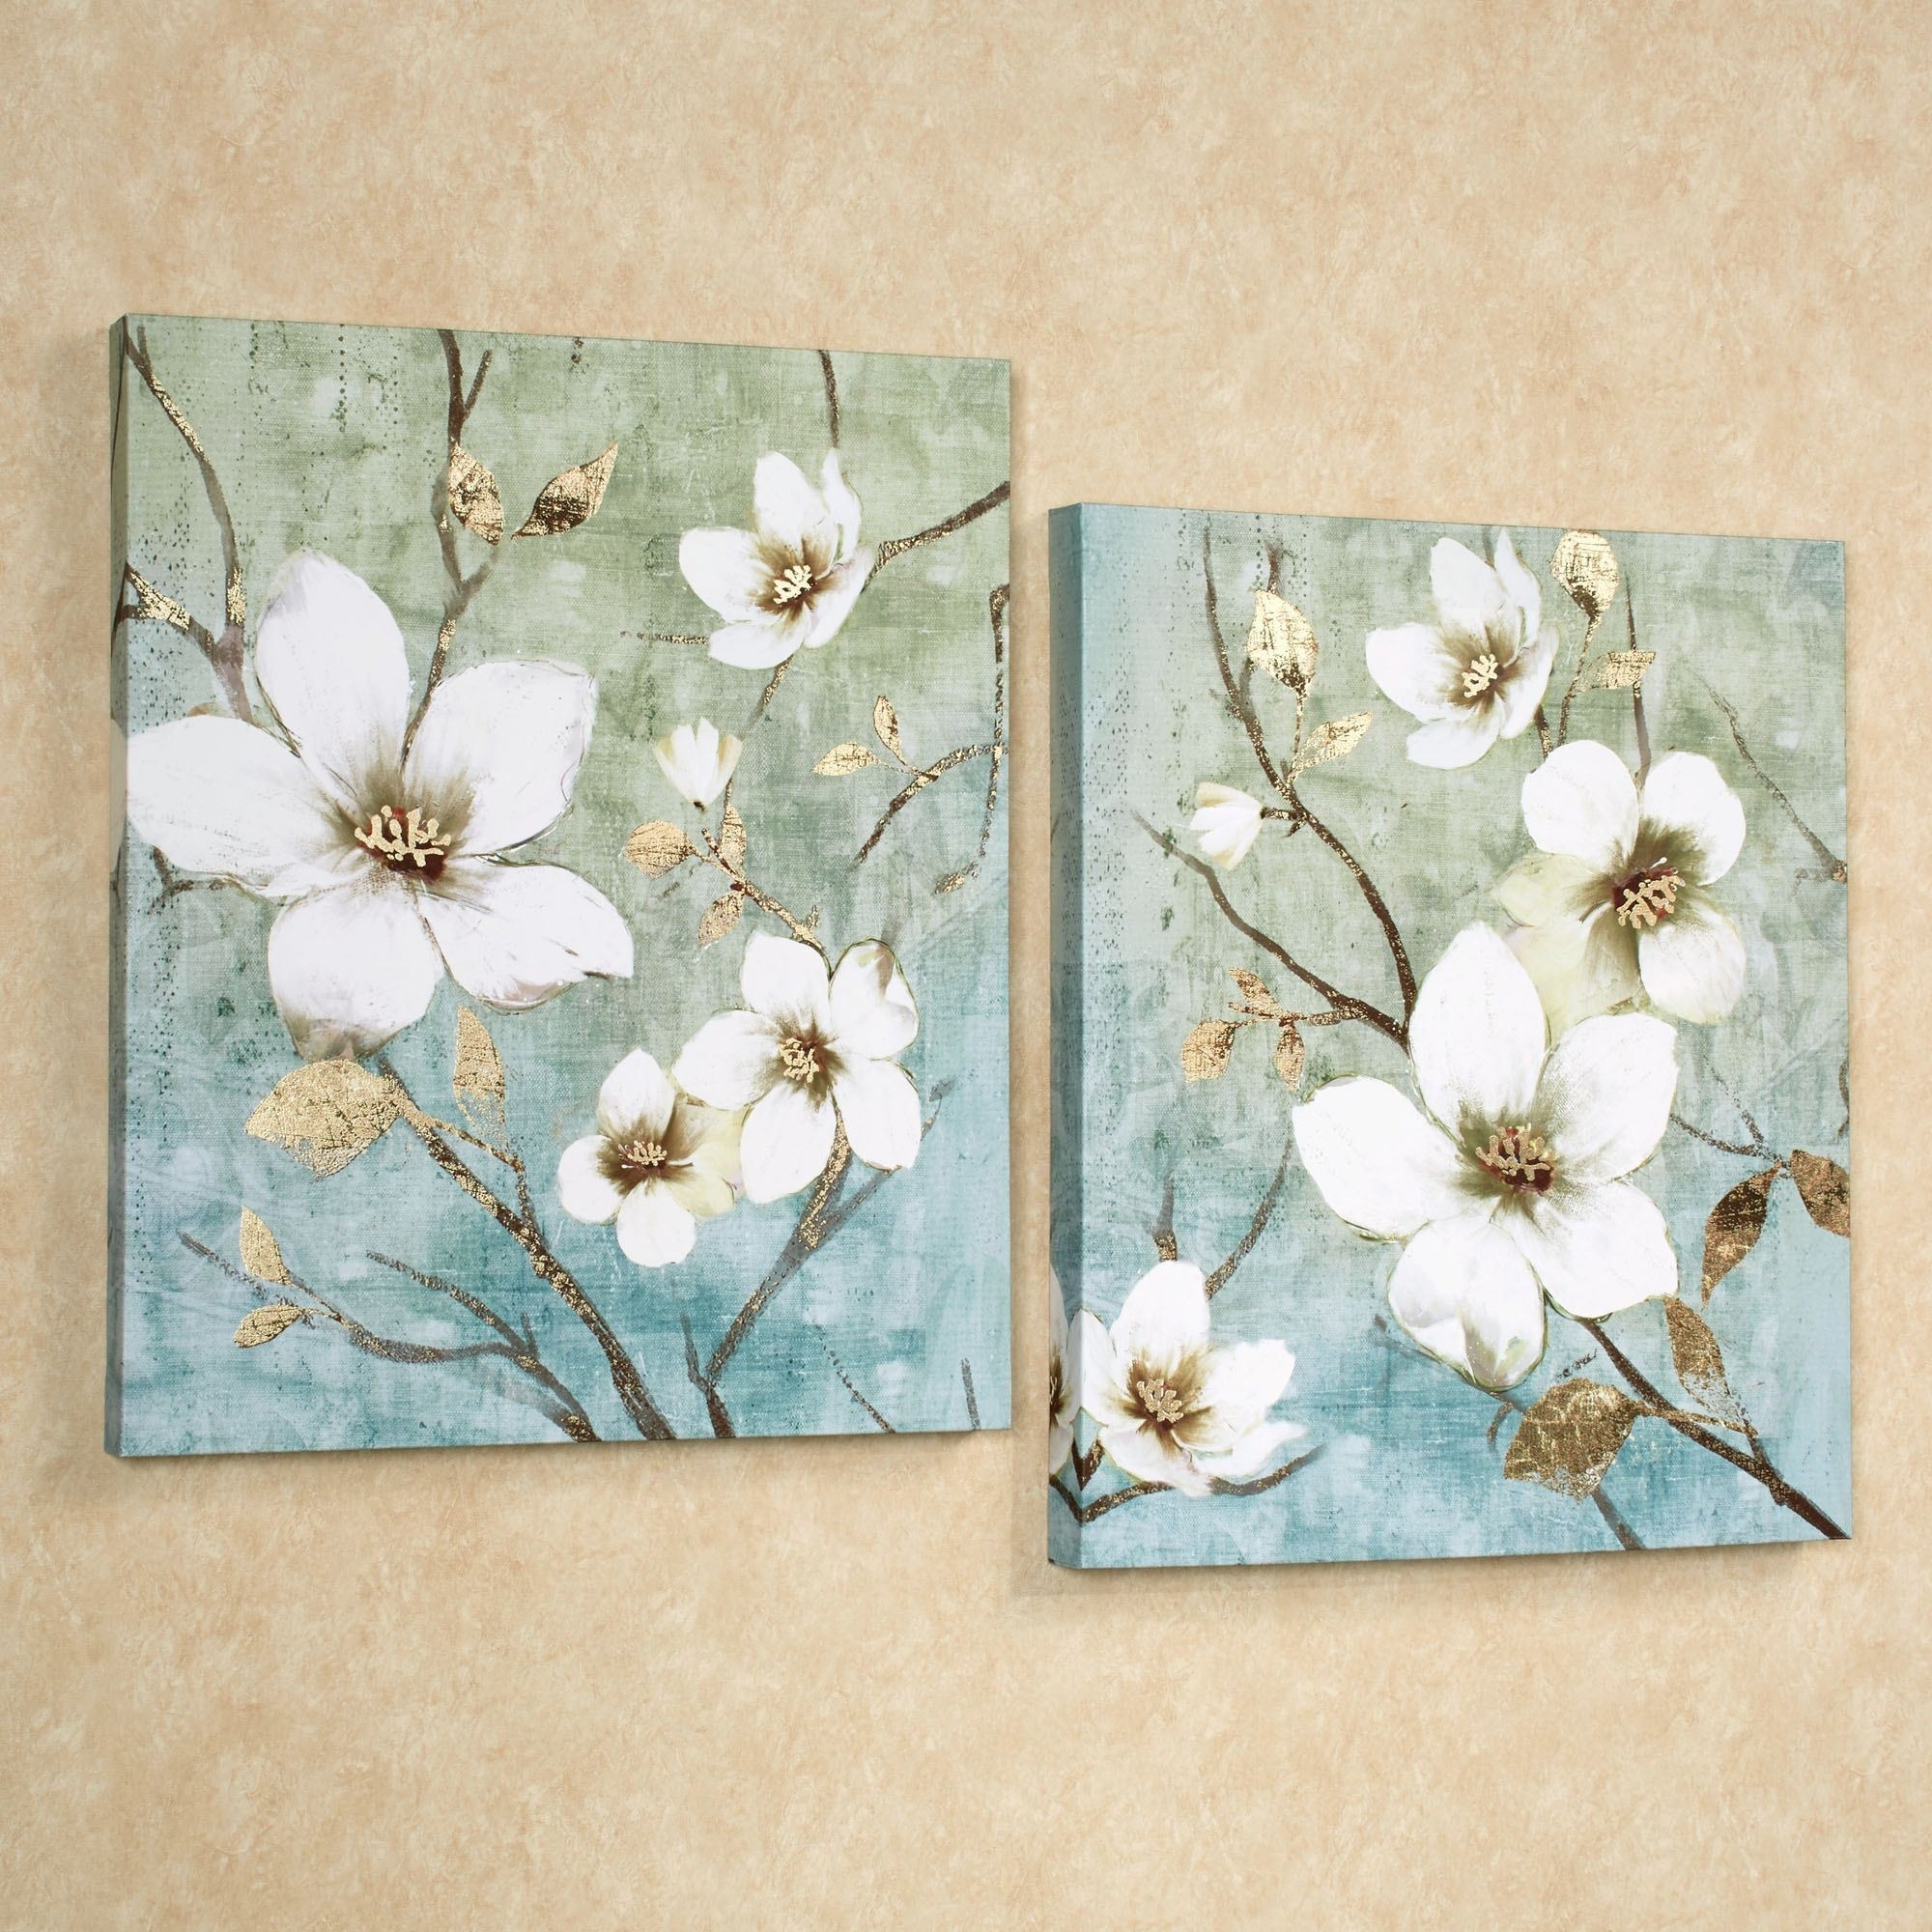 In Bloom Floral Canvas Wall Art Set With Newest Canvas Wall Art Of Flowers (View 4 of 15)